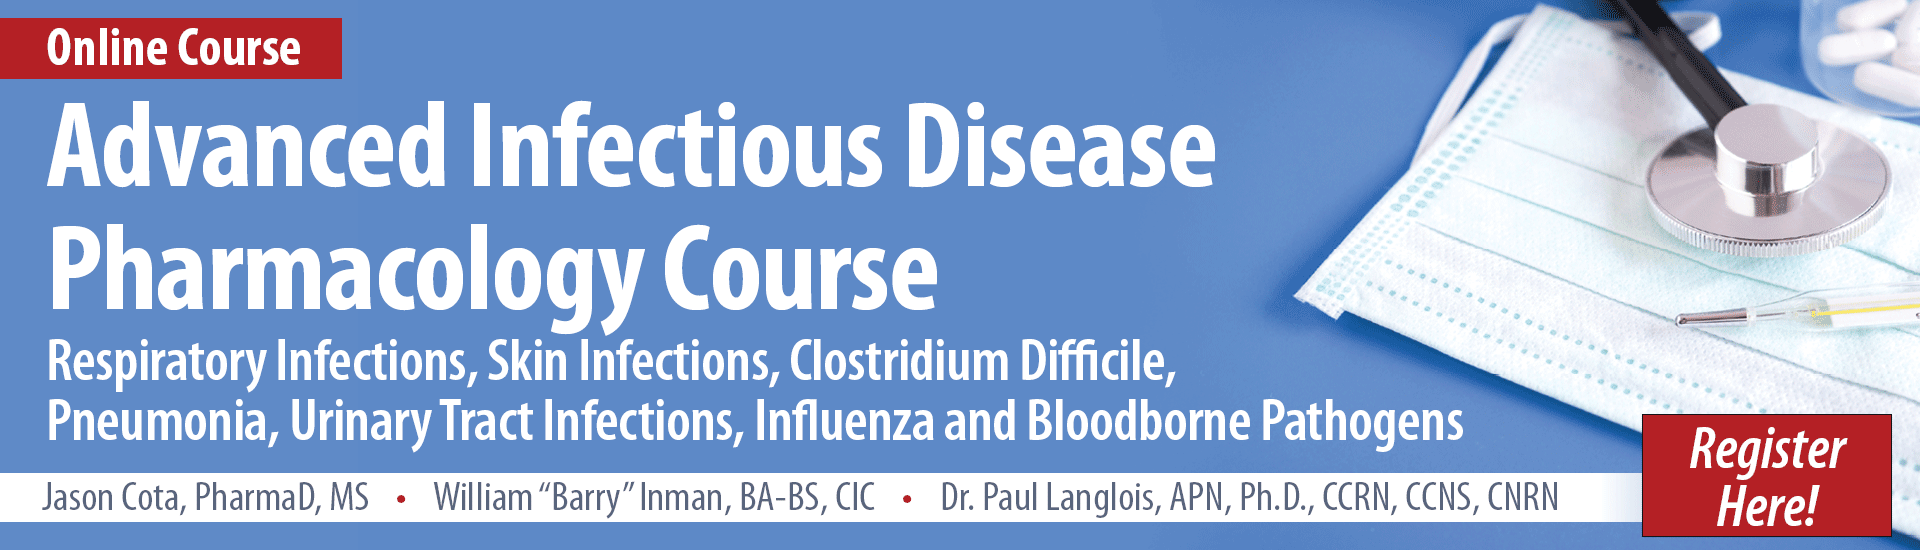 Advanced Infectious Disease Pharmacology Course: Respiratory Infections, Skin Infections, Clostridium Difficile, Pneumonia, Urinary Tract Infections, Influenza and Bloodborne Pathogens